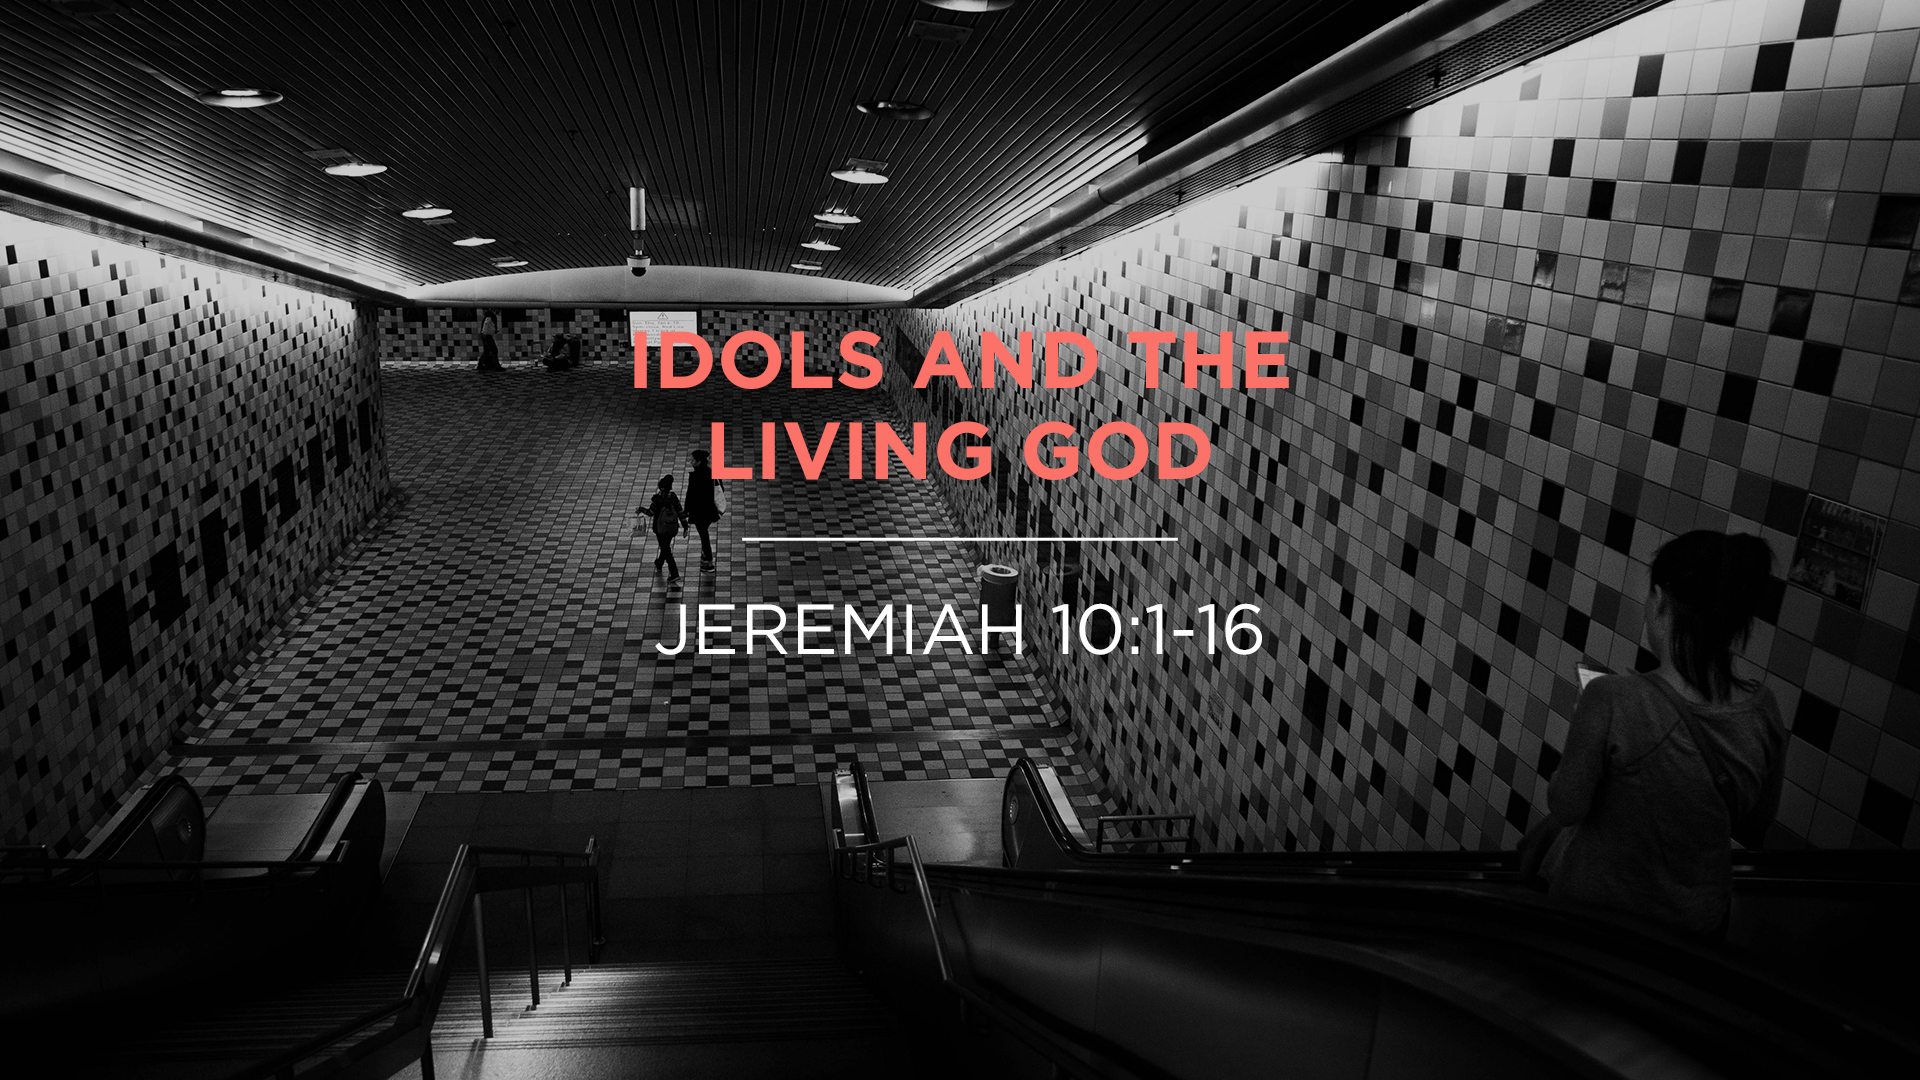 Idols and the Living God